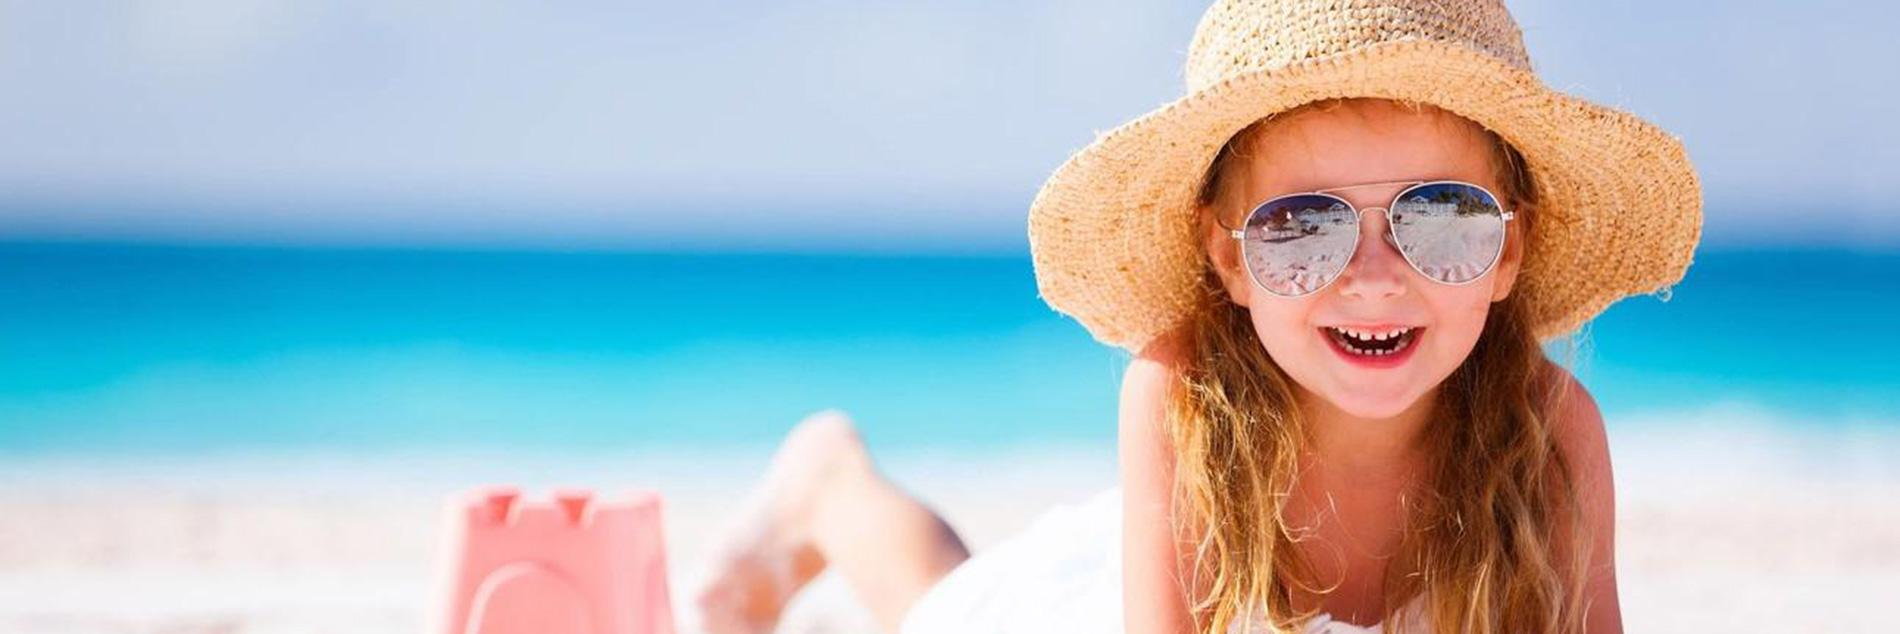 Girl on Beach with sun glasses and sun hat